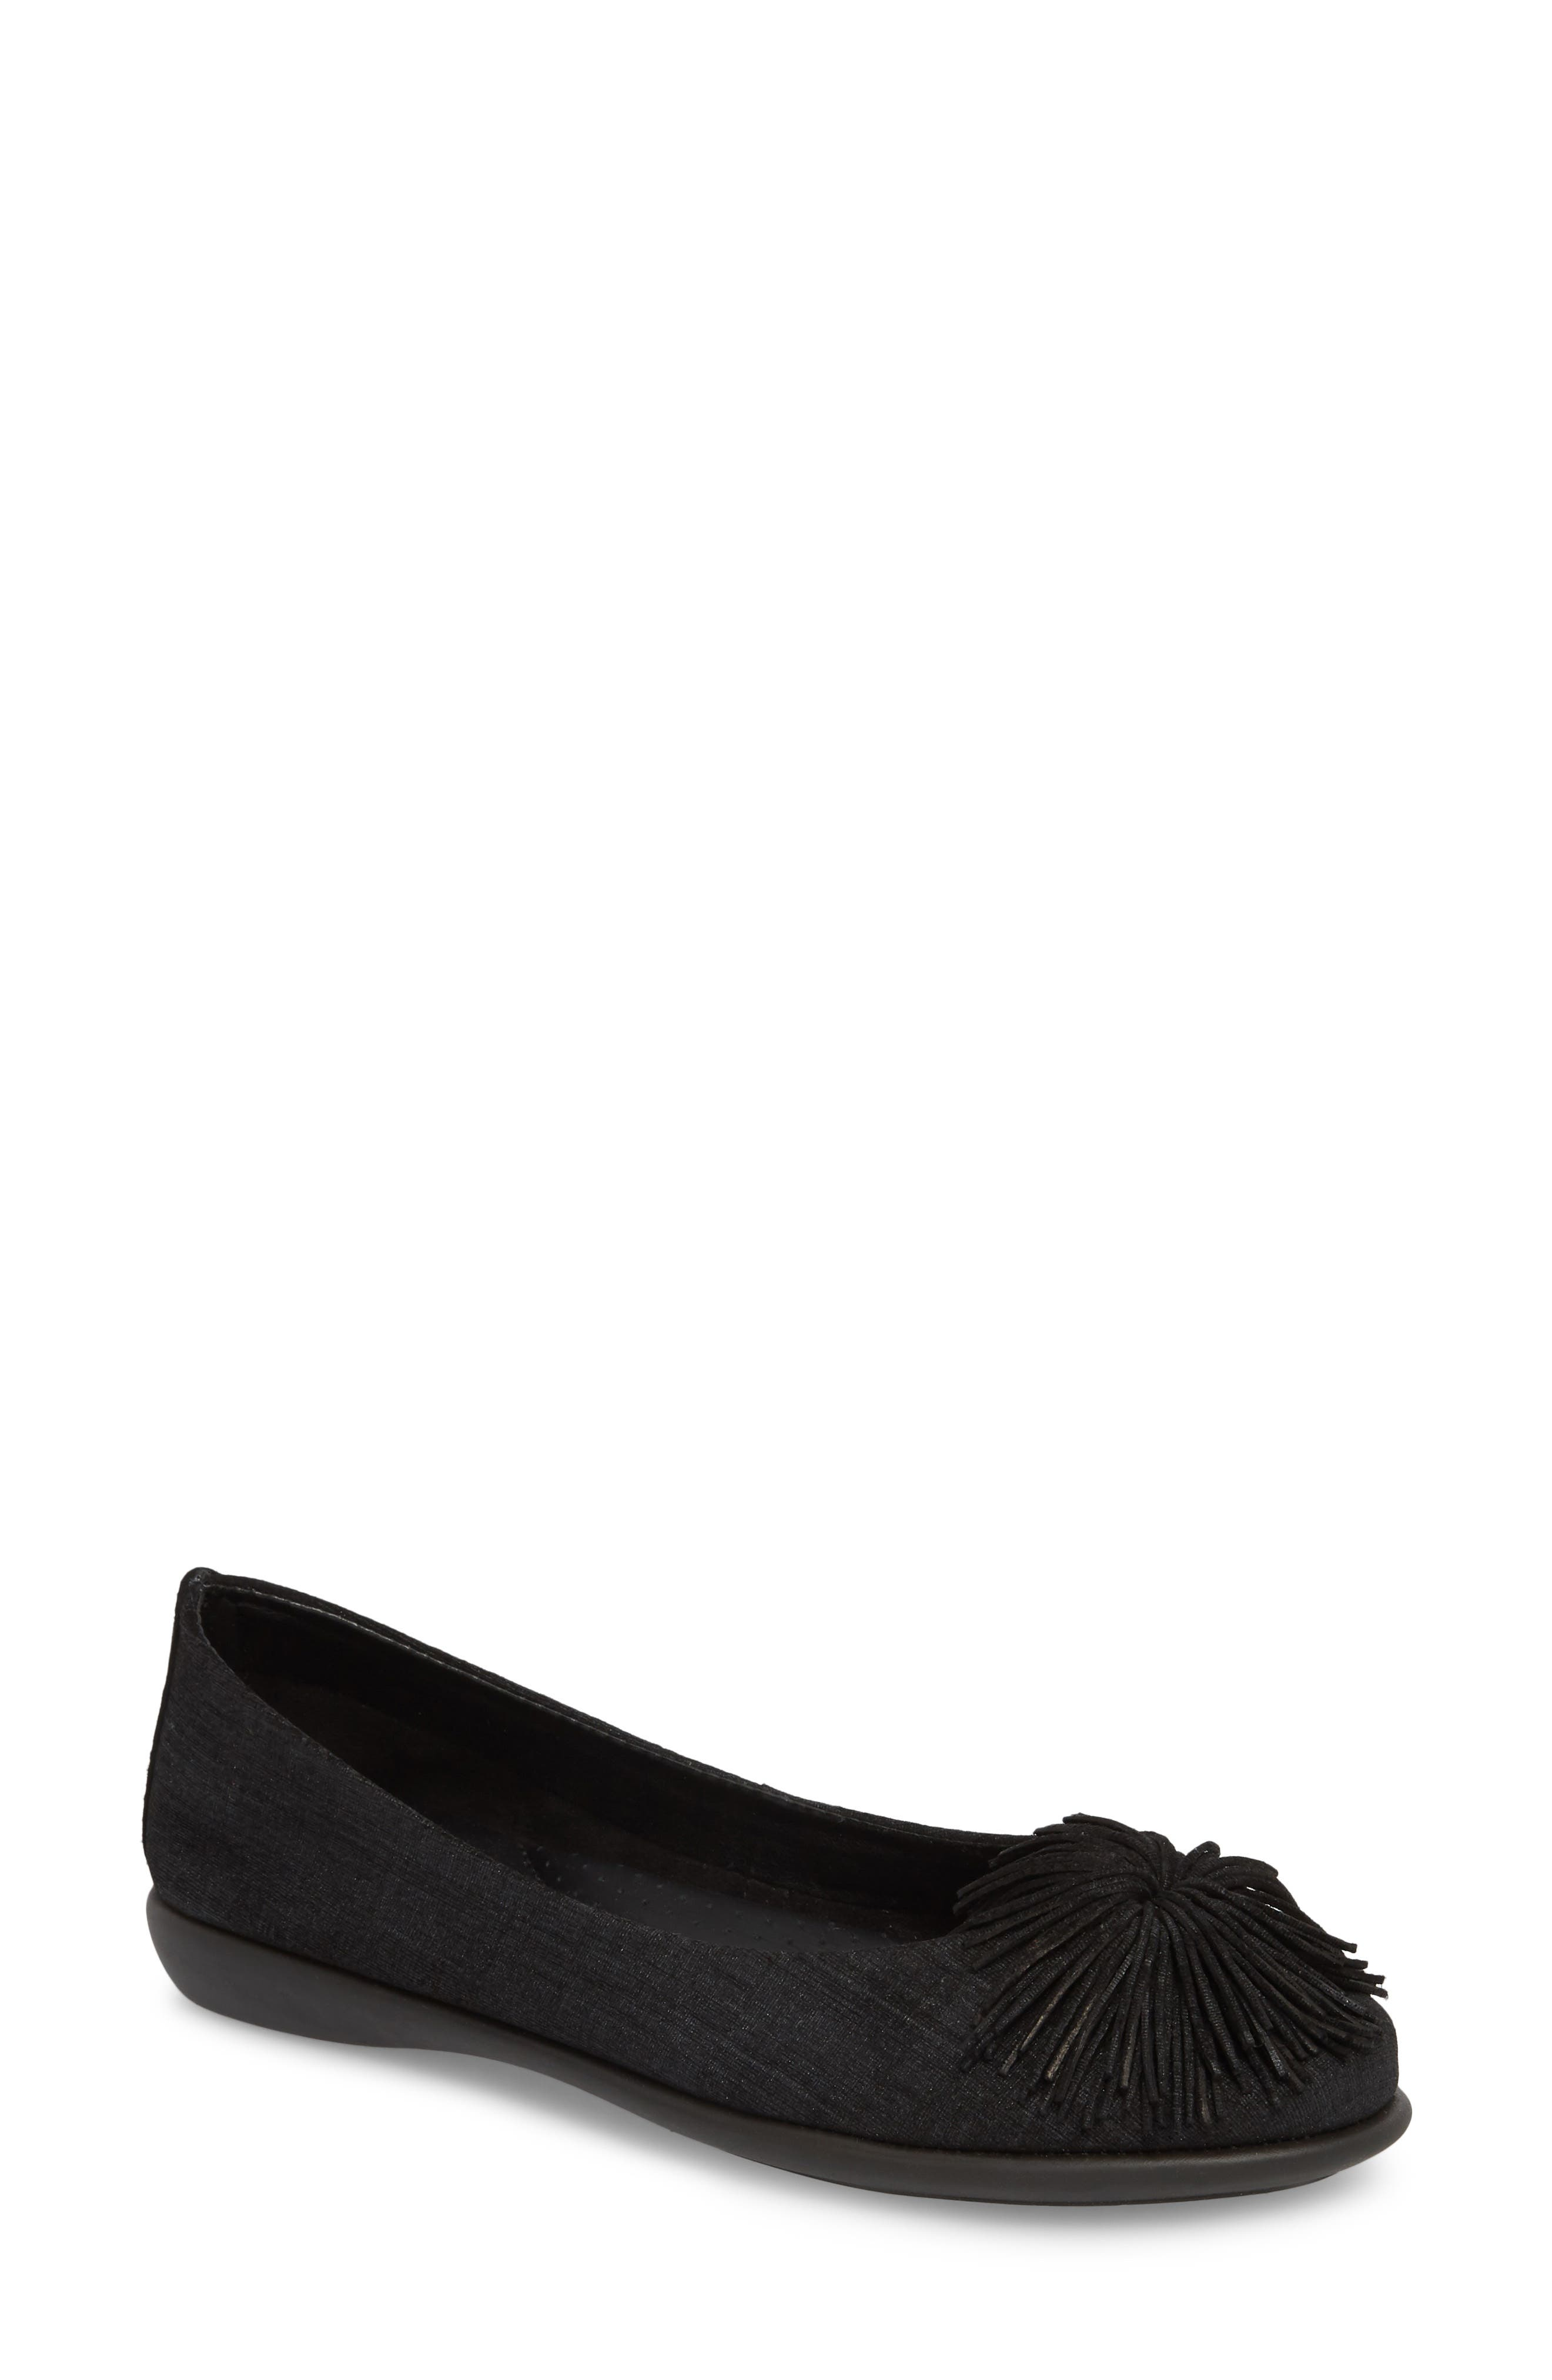 Ballet Flats Ballerina Shoes for Women On Sale in Outlet, Black, Suede leather, 2017, 3.5 4.5 5.5 6.5 Prada